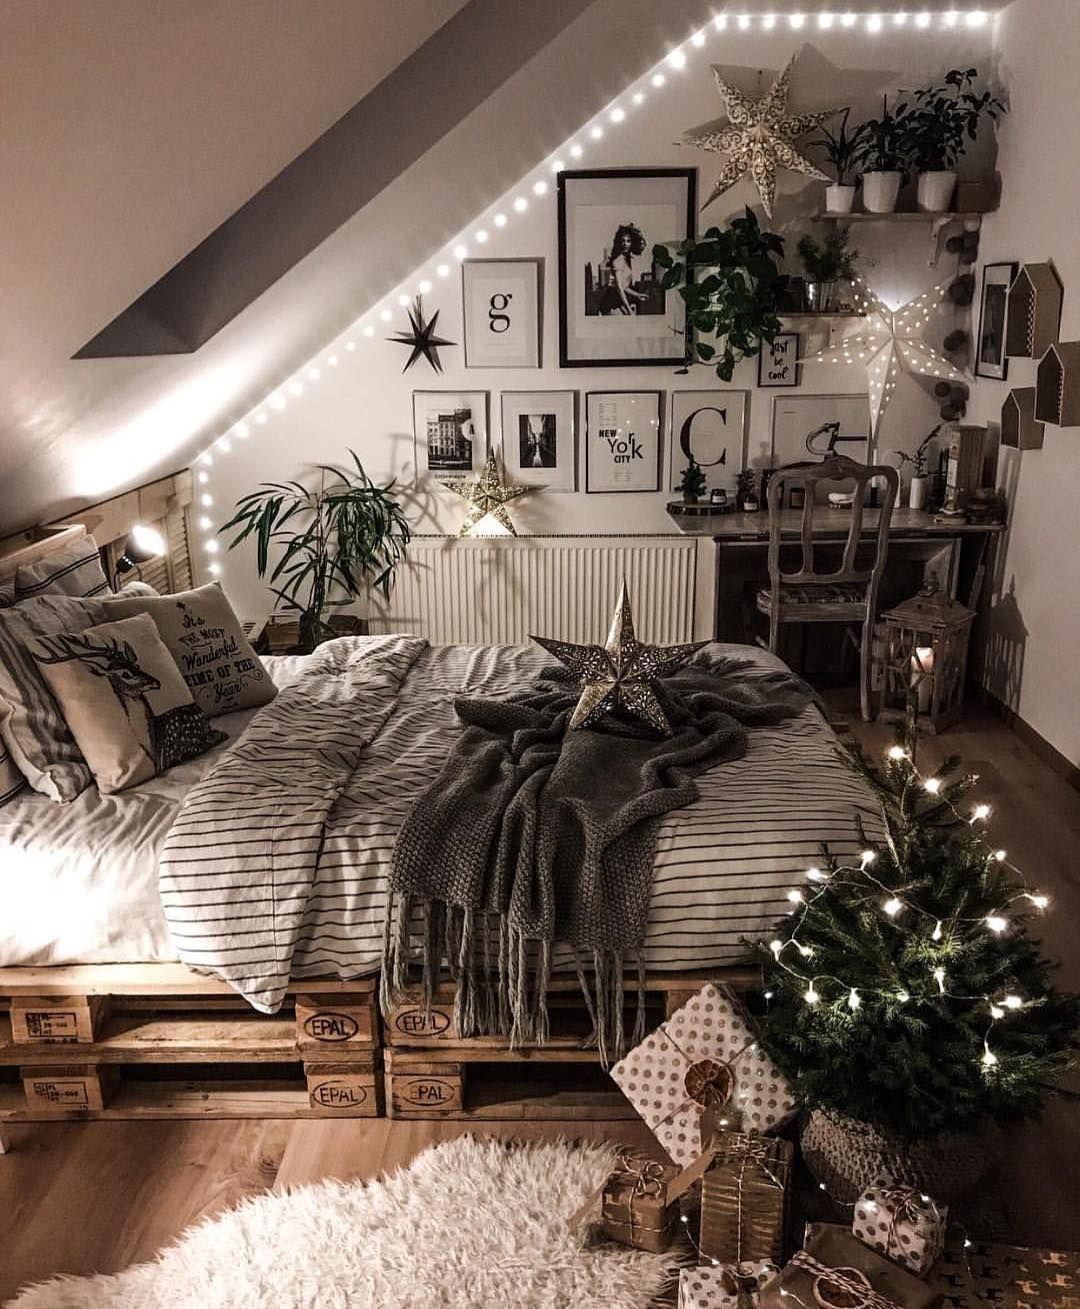 Top 37 Christmas Bedroom Decorations Ideas 2020 - newyearlights. com - - #bedroom #christmas #decorationforhome #decorations #bi4concept #bi4decor #Home #Page